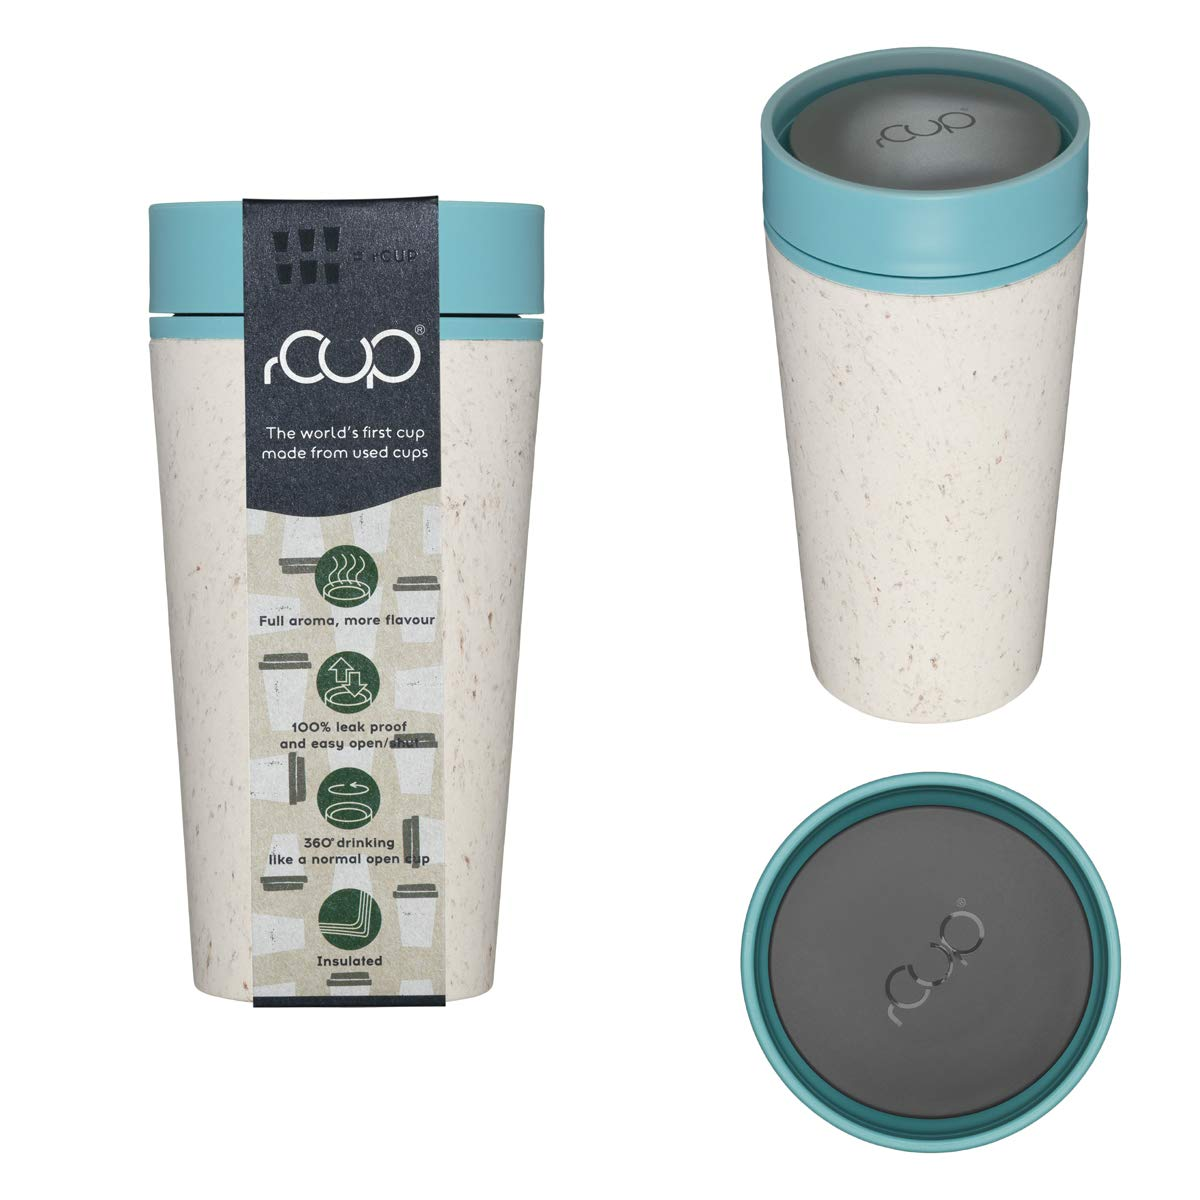 c07d1c8a486 rCup - World's First Reusable Cup Made from Recycled Cups (White - Teal  Blue): Amazon.co.uk: Kitchen & Home